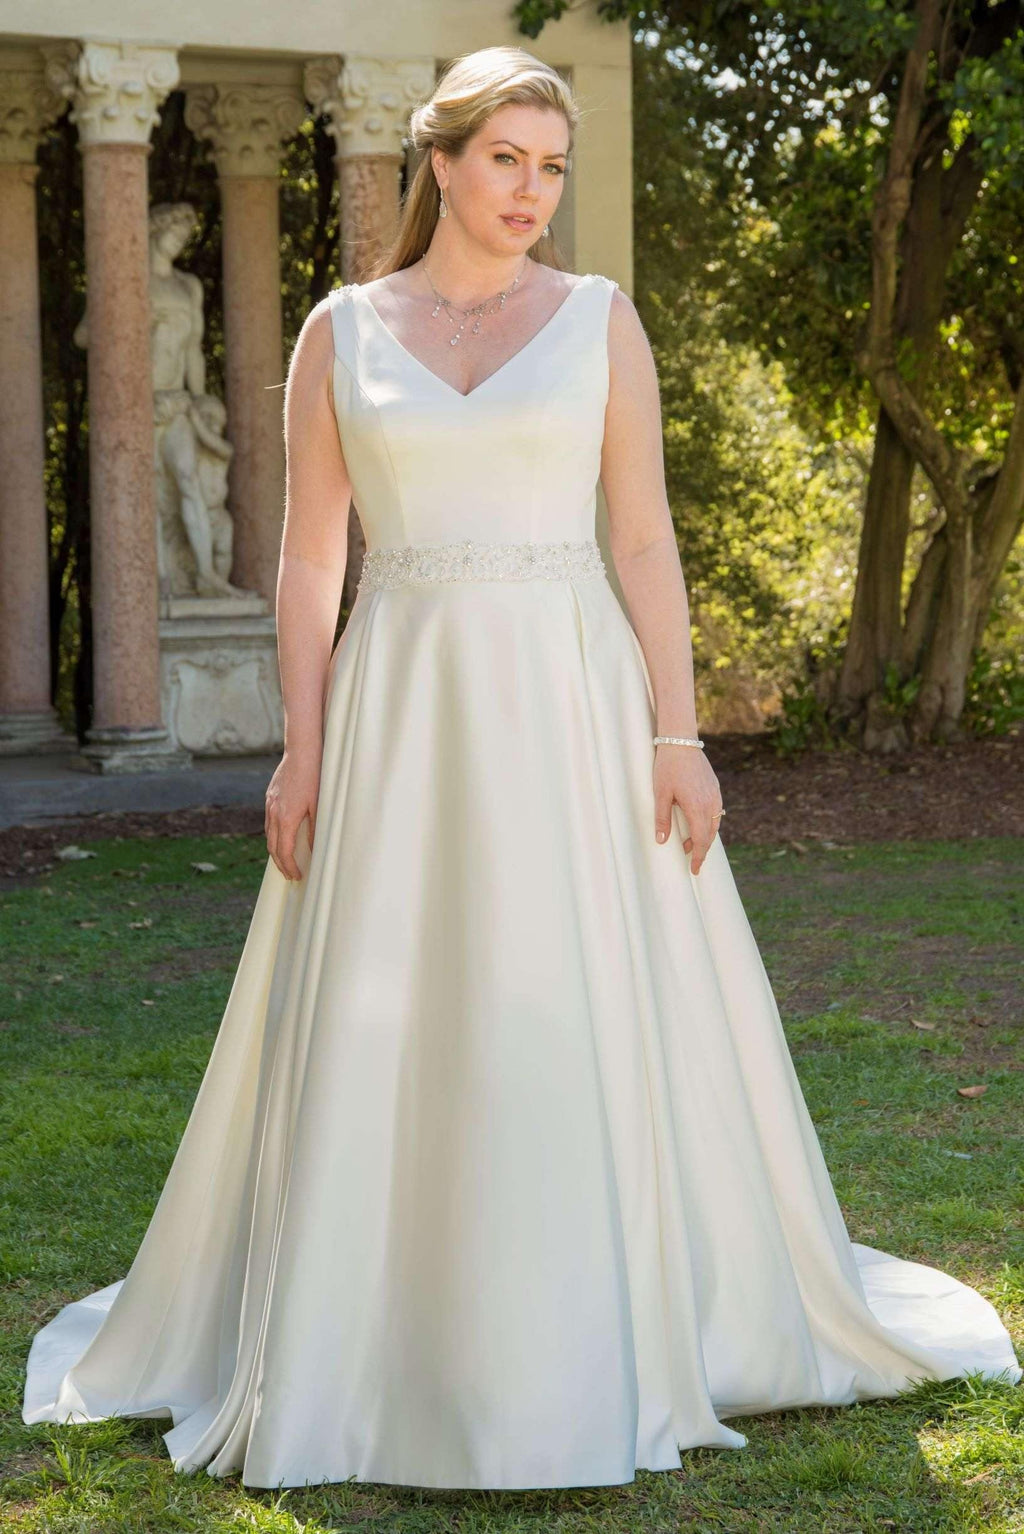 VENUS BRIDAL - Adelaide - Adore Bridal and Occasion Wear